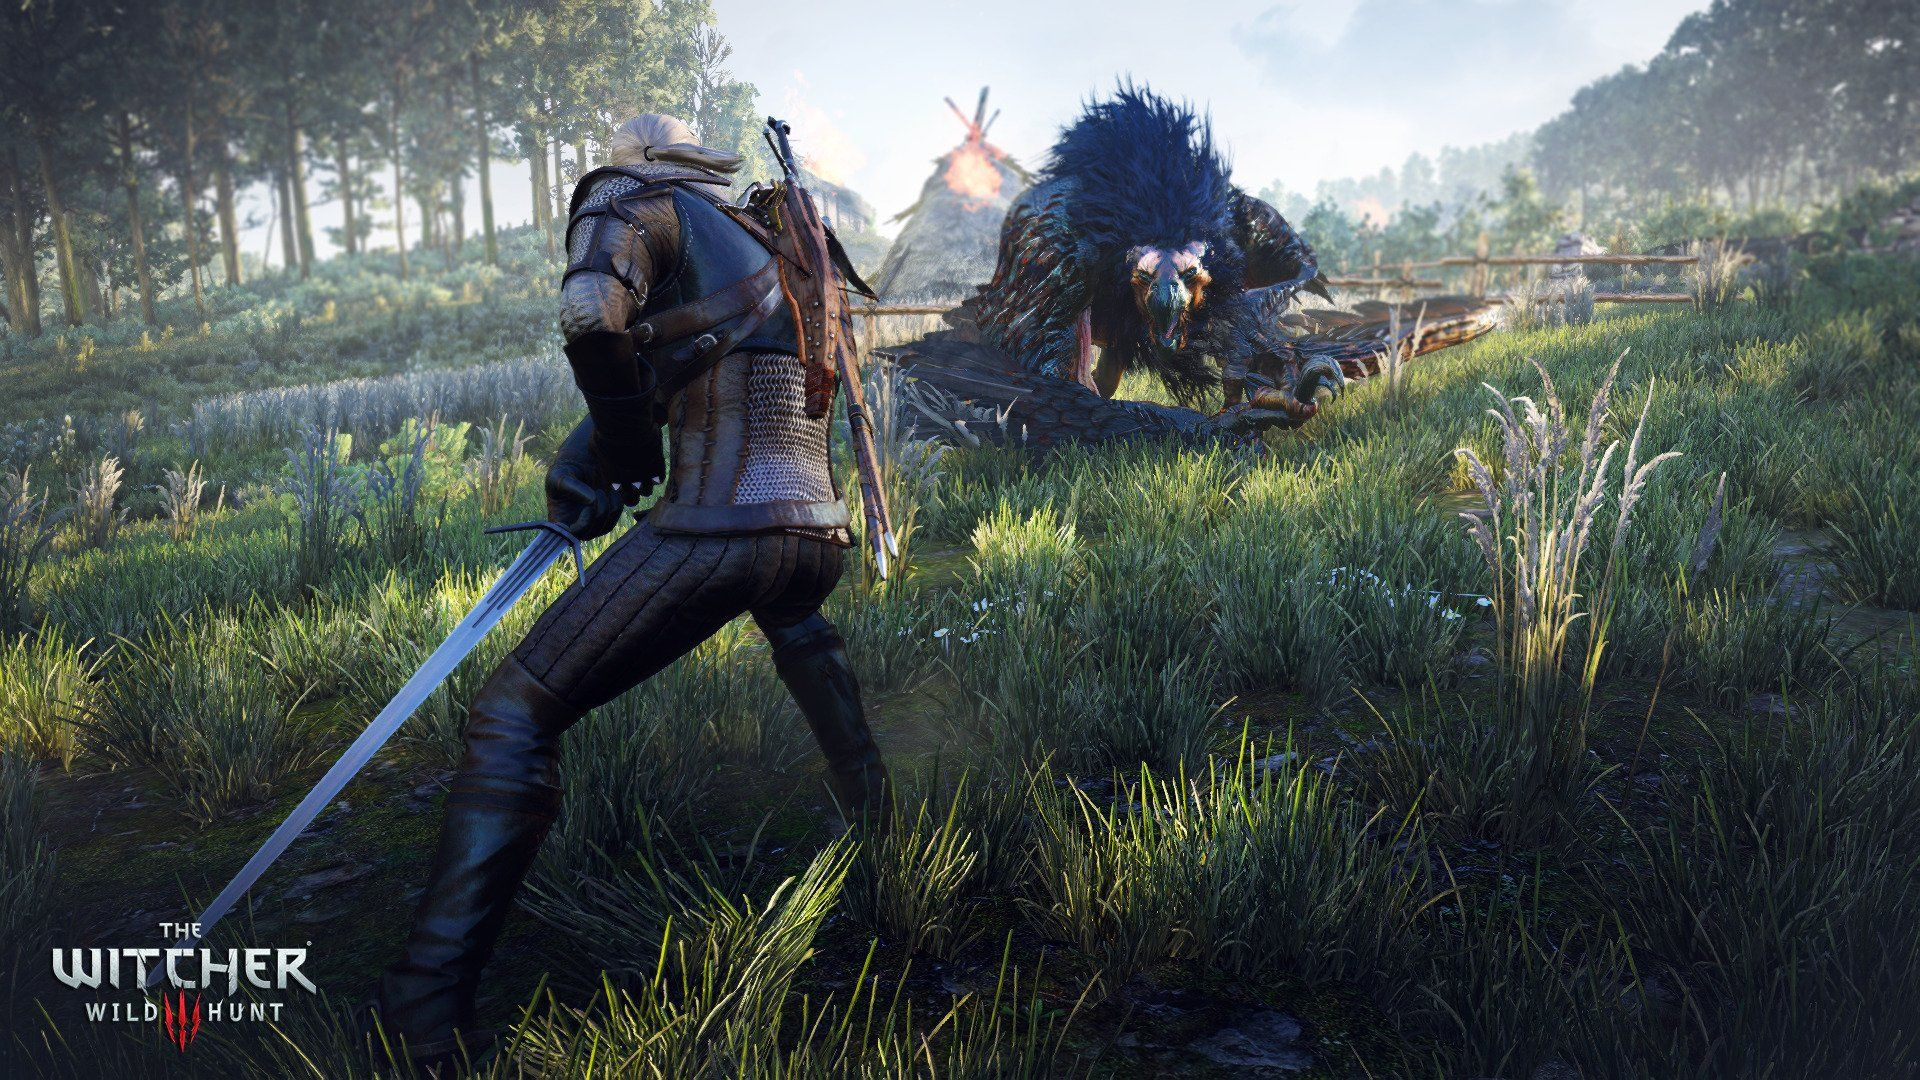 Video Game The Witcher 3 Wild Hunt The Witcher Wallpaper